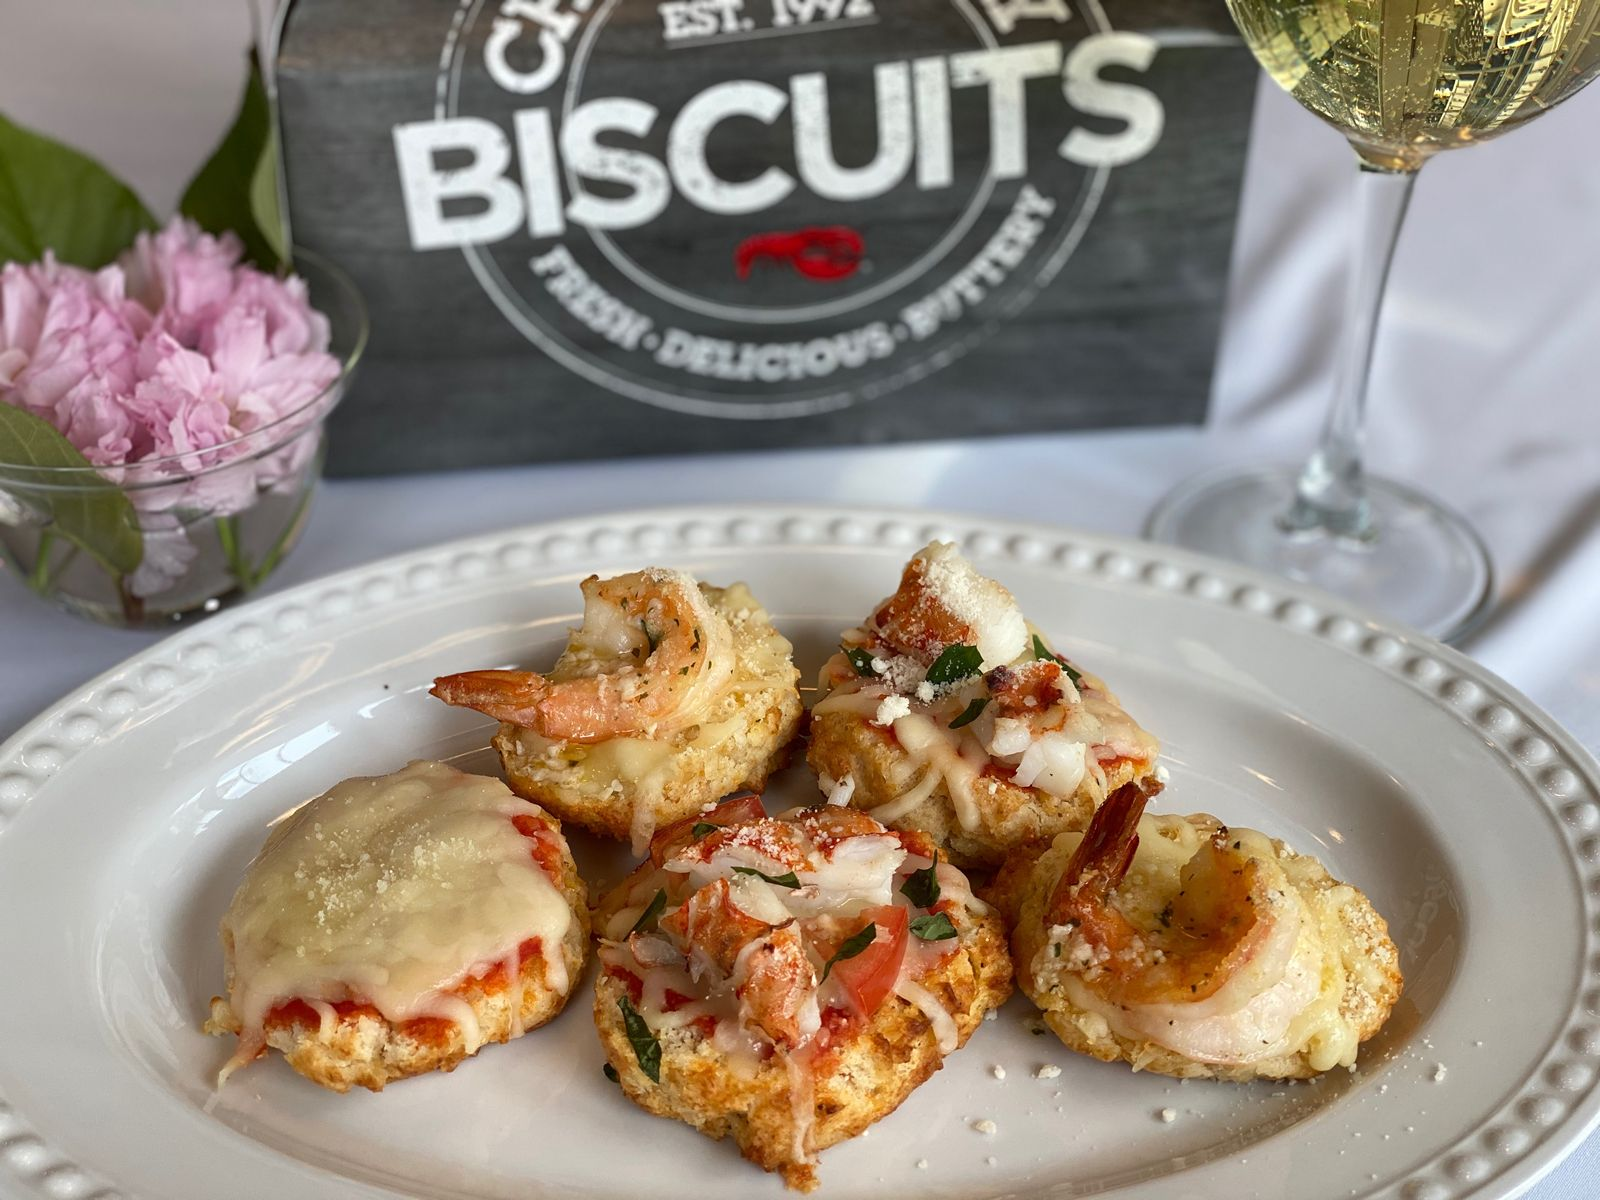 Red Lobster Celebrates National Biscuit Day With Cheddar Bay Biscuit At-Home Recipes to Enjoy All. Day. Long.